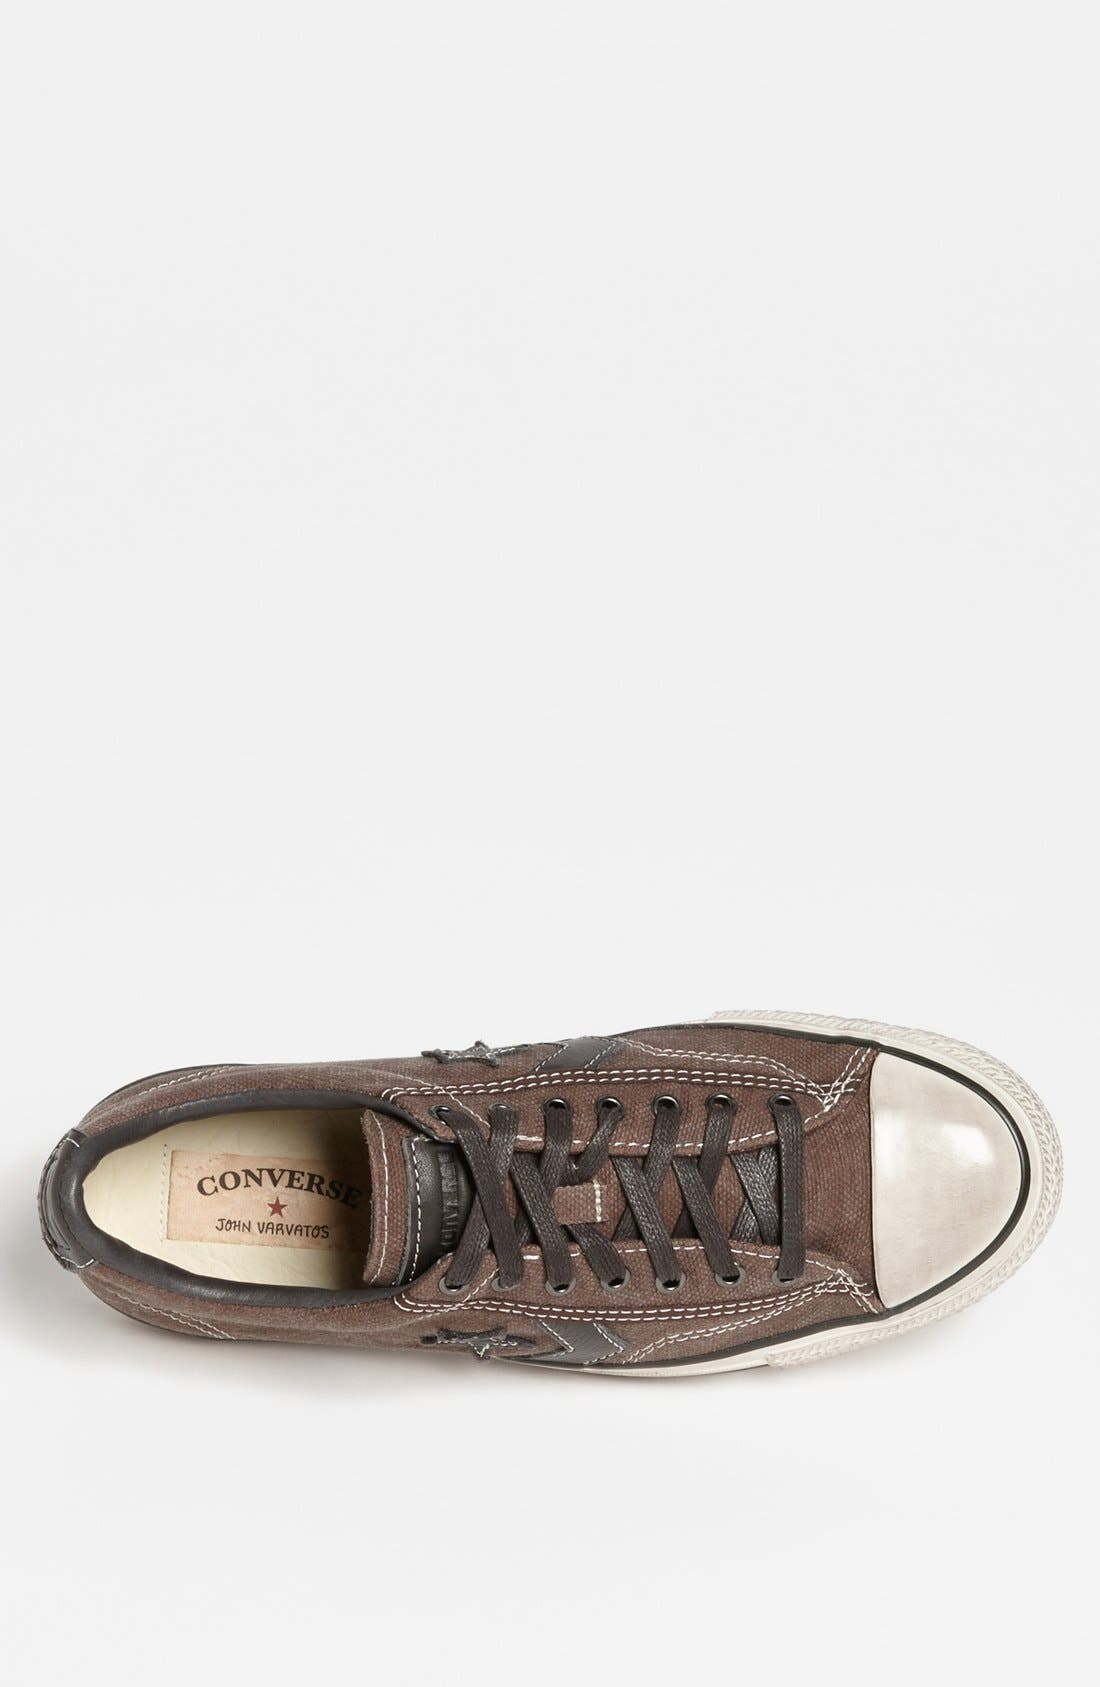 Alternate Image 3  - Converse by John Varvatos 'Star Player' Sneaker (Men)